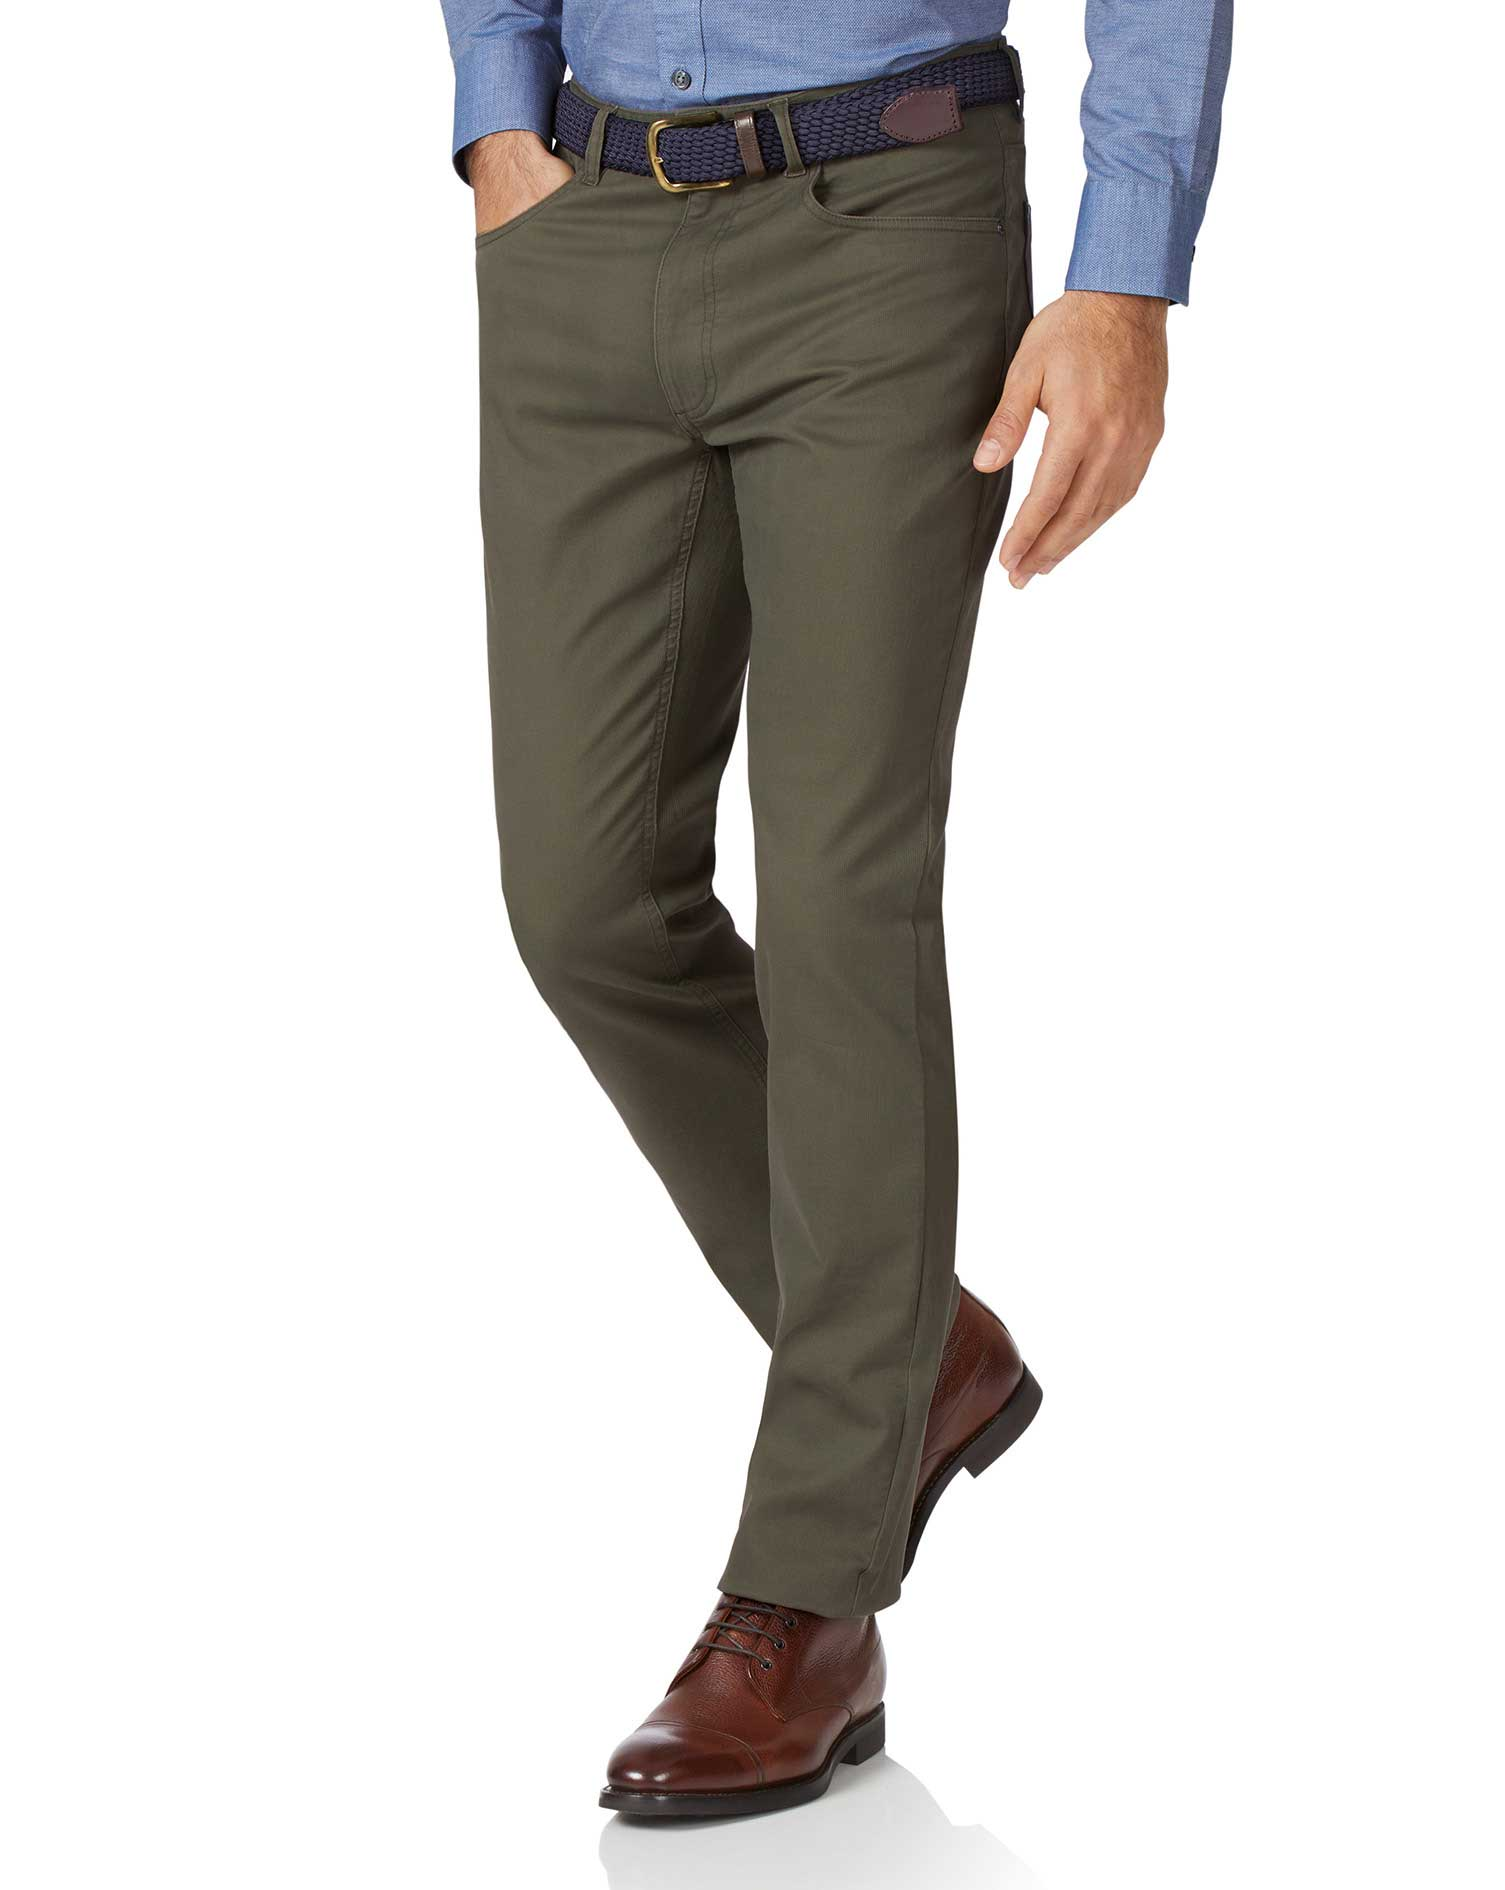 Olive Slim Fit 5 Pocket Bedford Corduroy Trousers Size W38 L30 by Charles Tyrwhitt